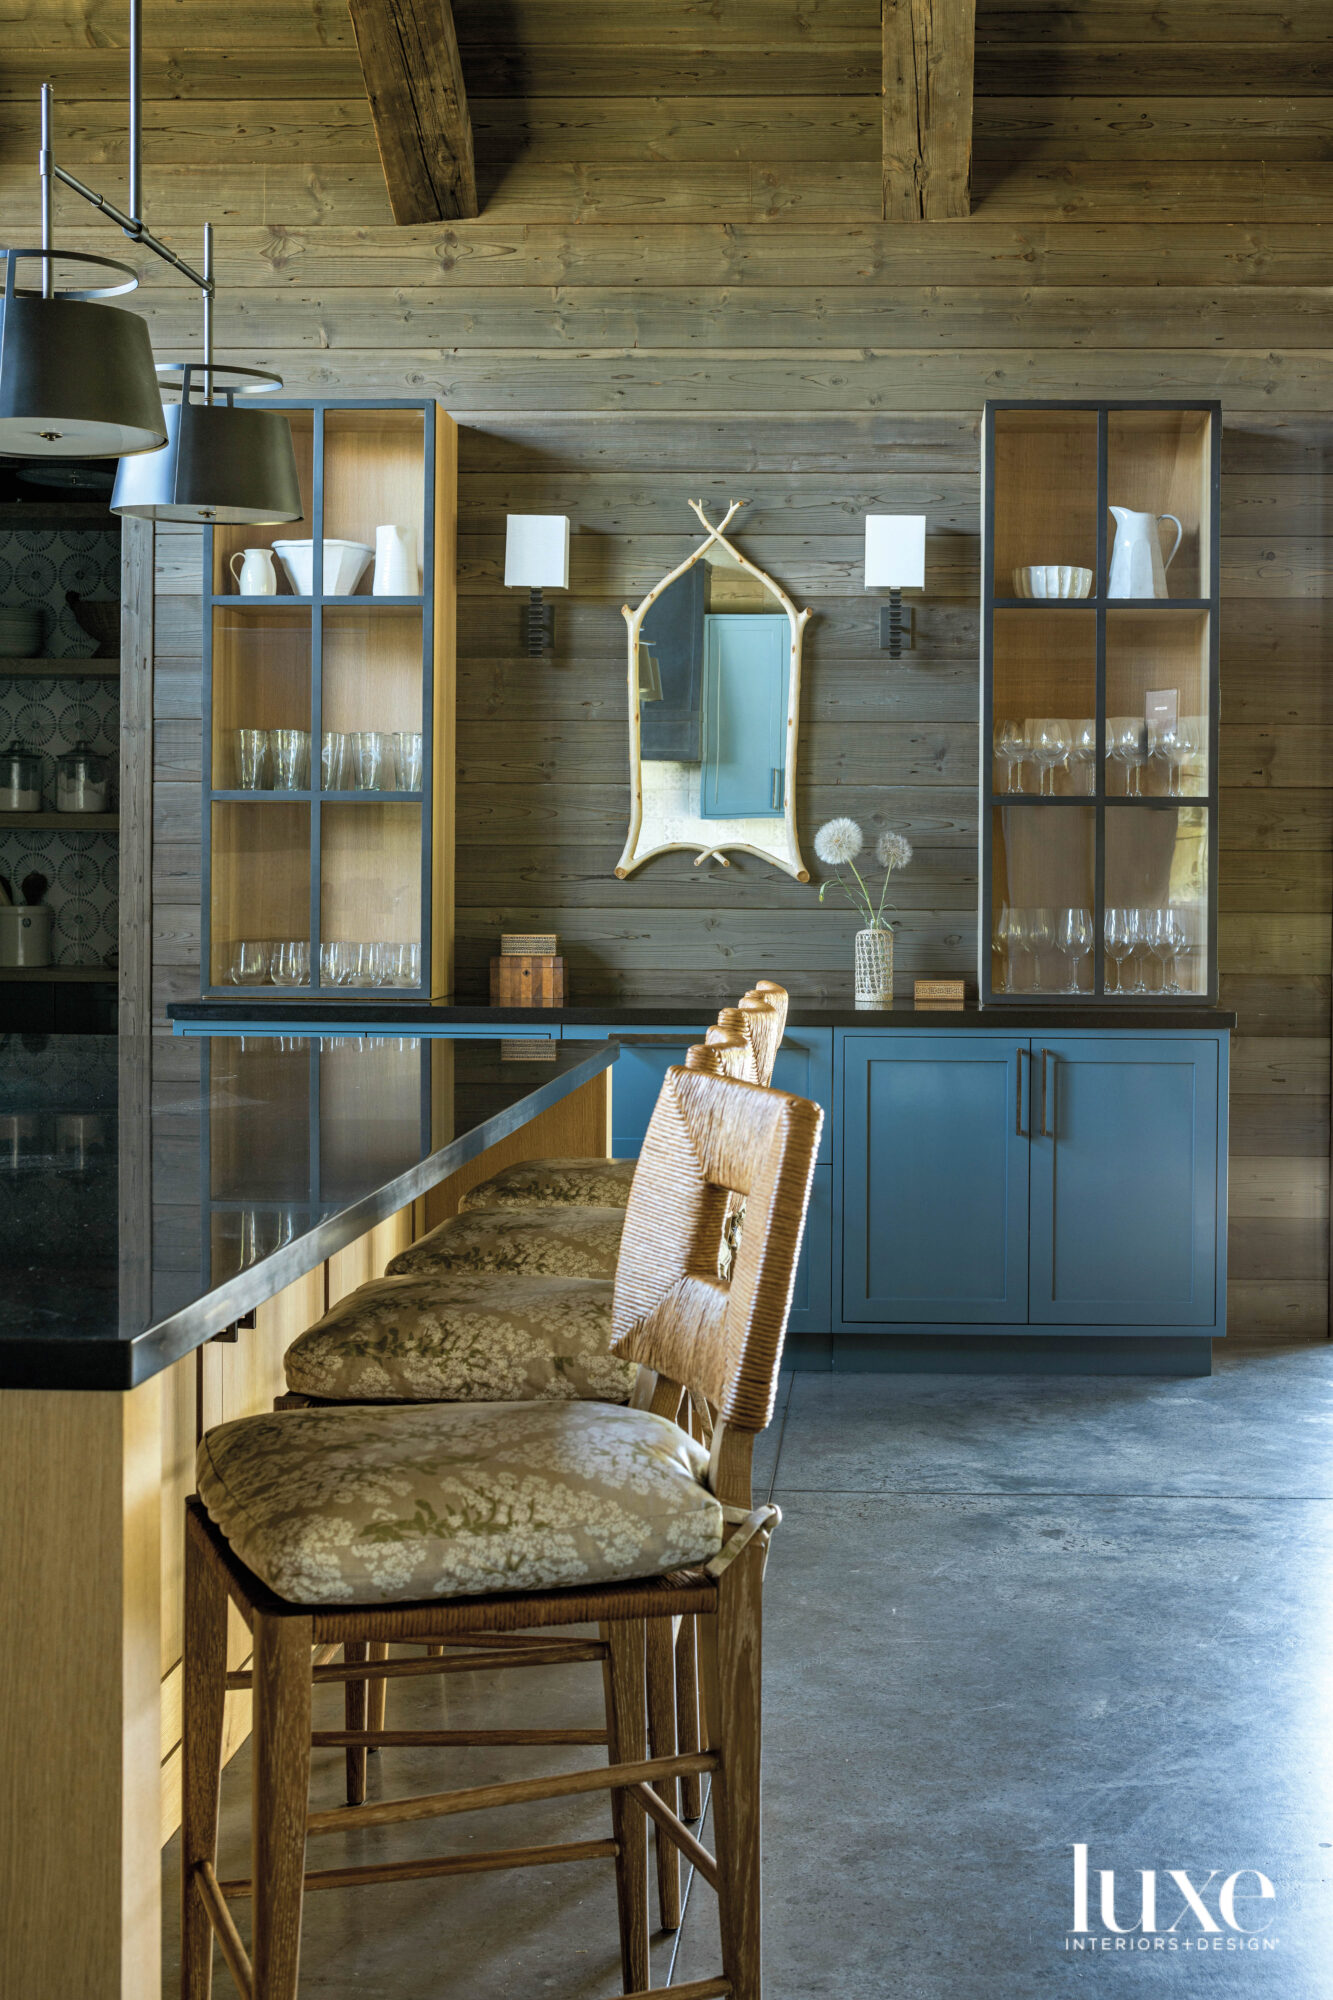 Detail of kitchen island and...